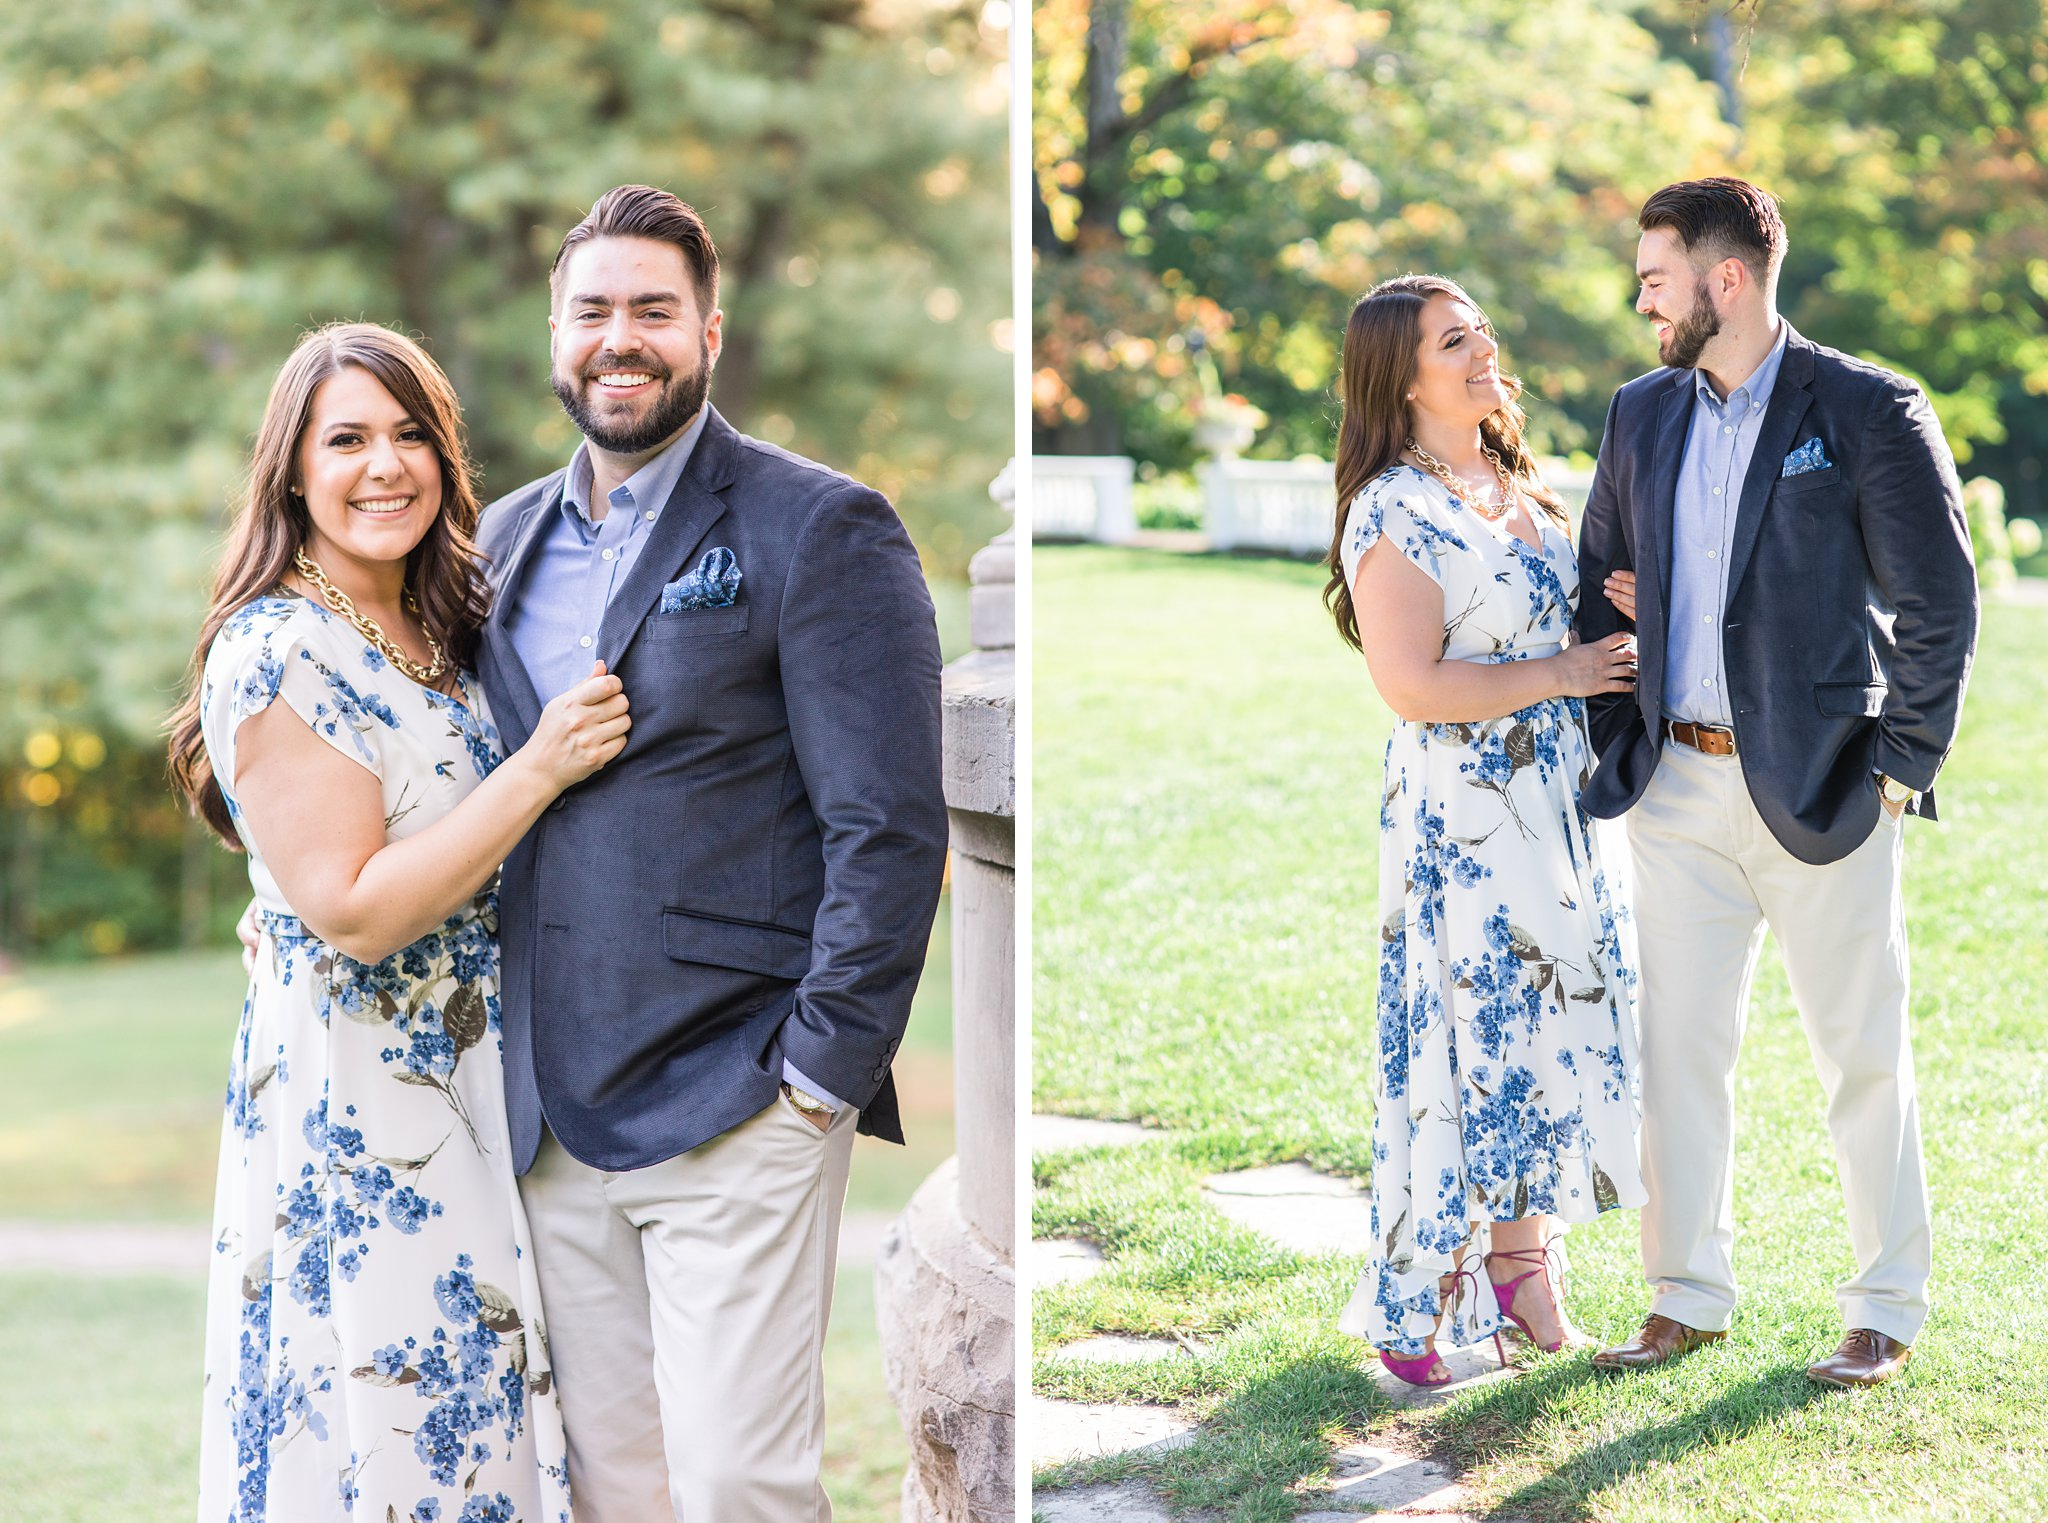 Bride and groom, Mackenzie King Estate Engagement Photos by Amy Pinder Photography